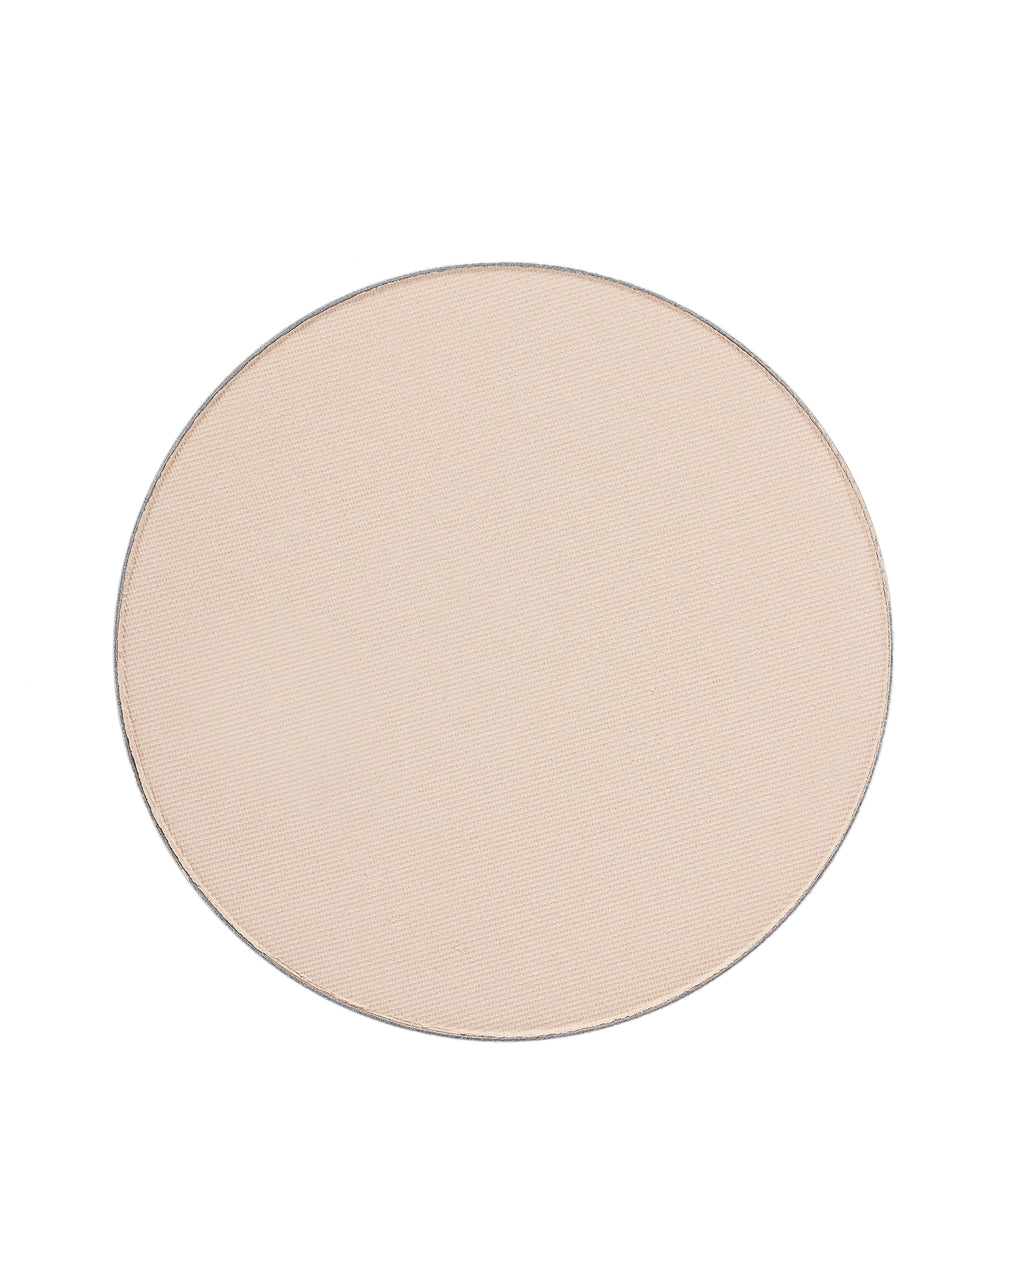 Mineral Powder Foundation Magnetic Pan in Shell